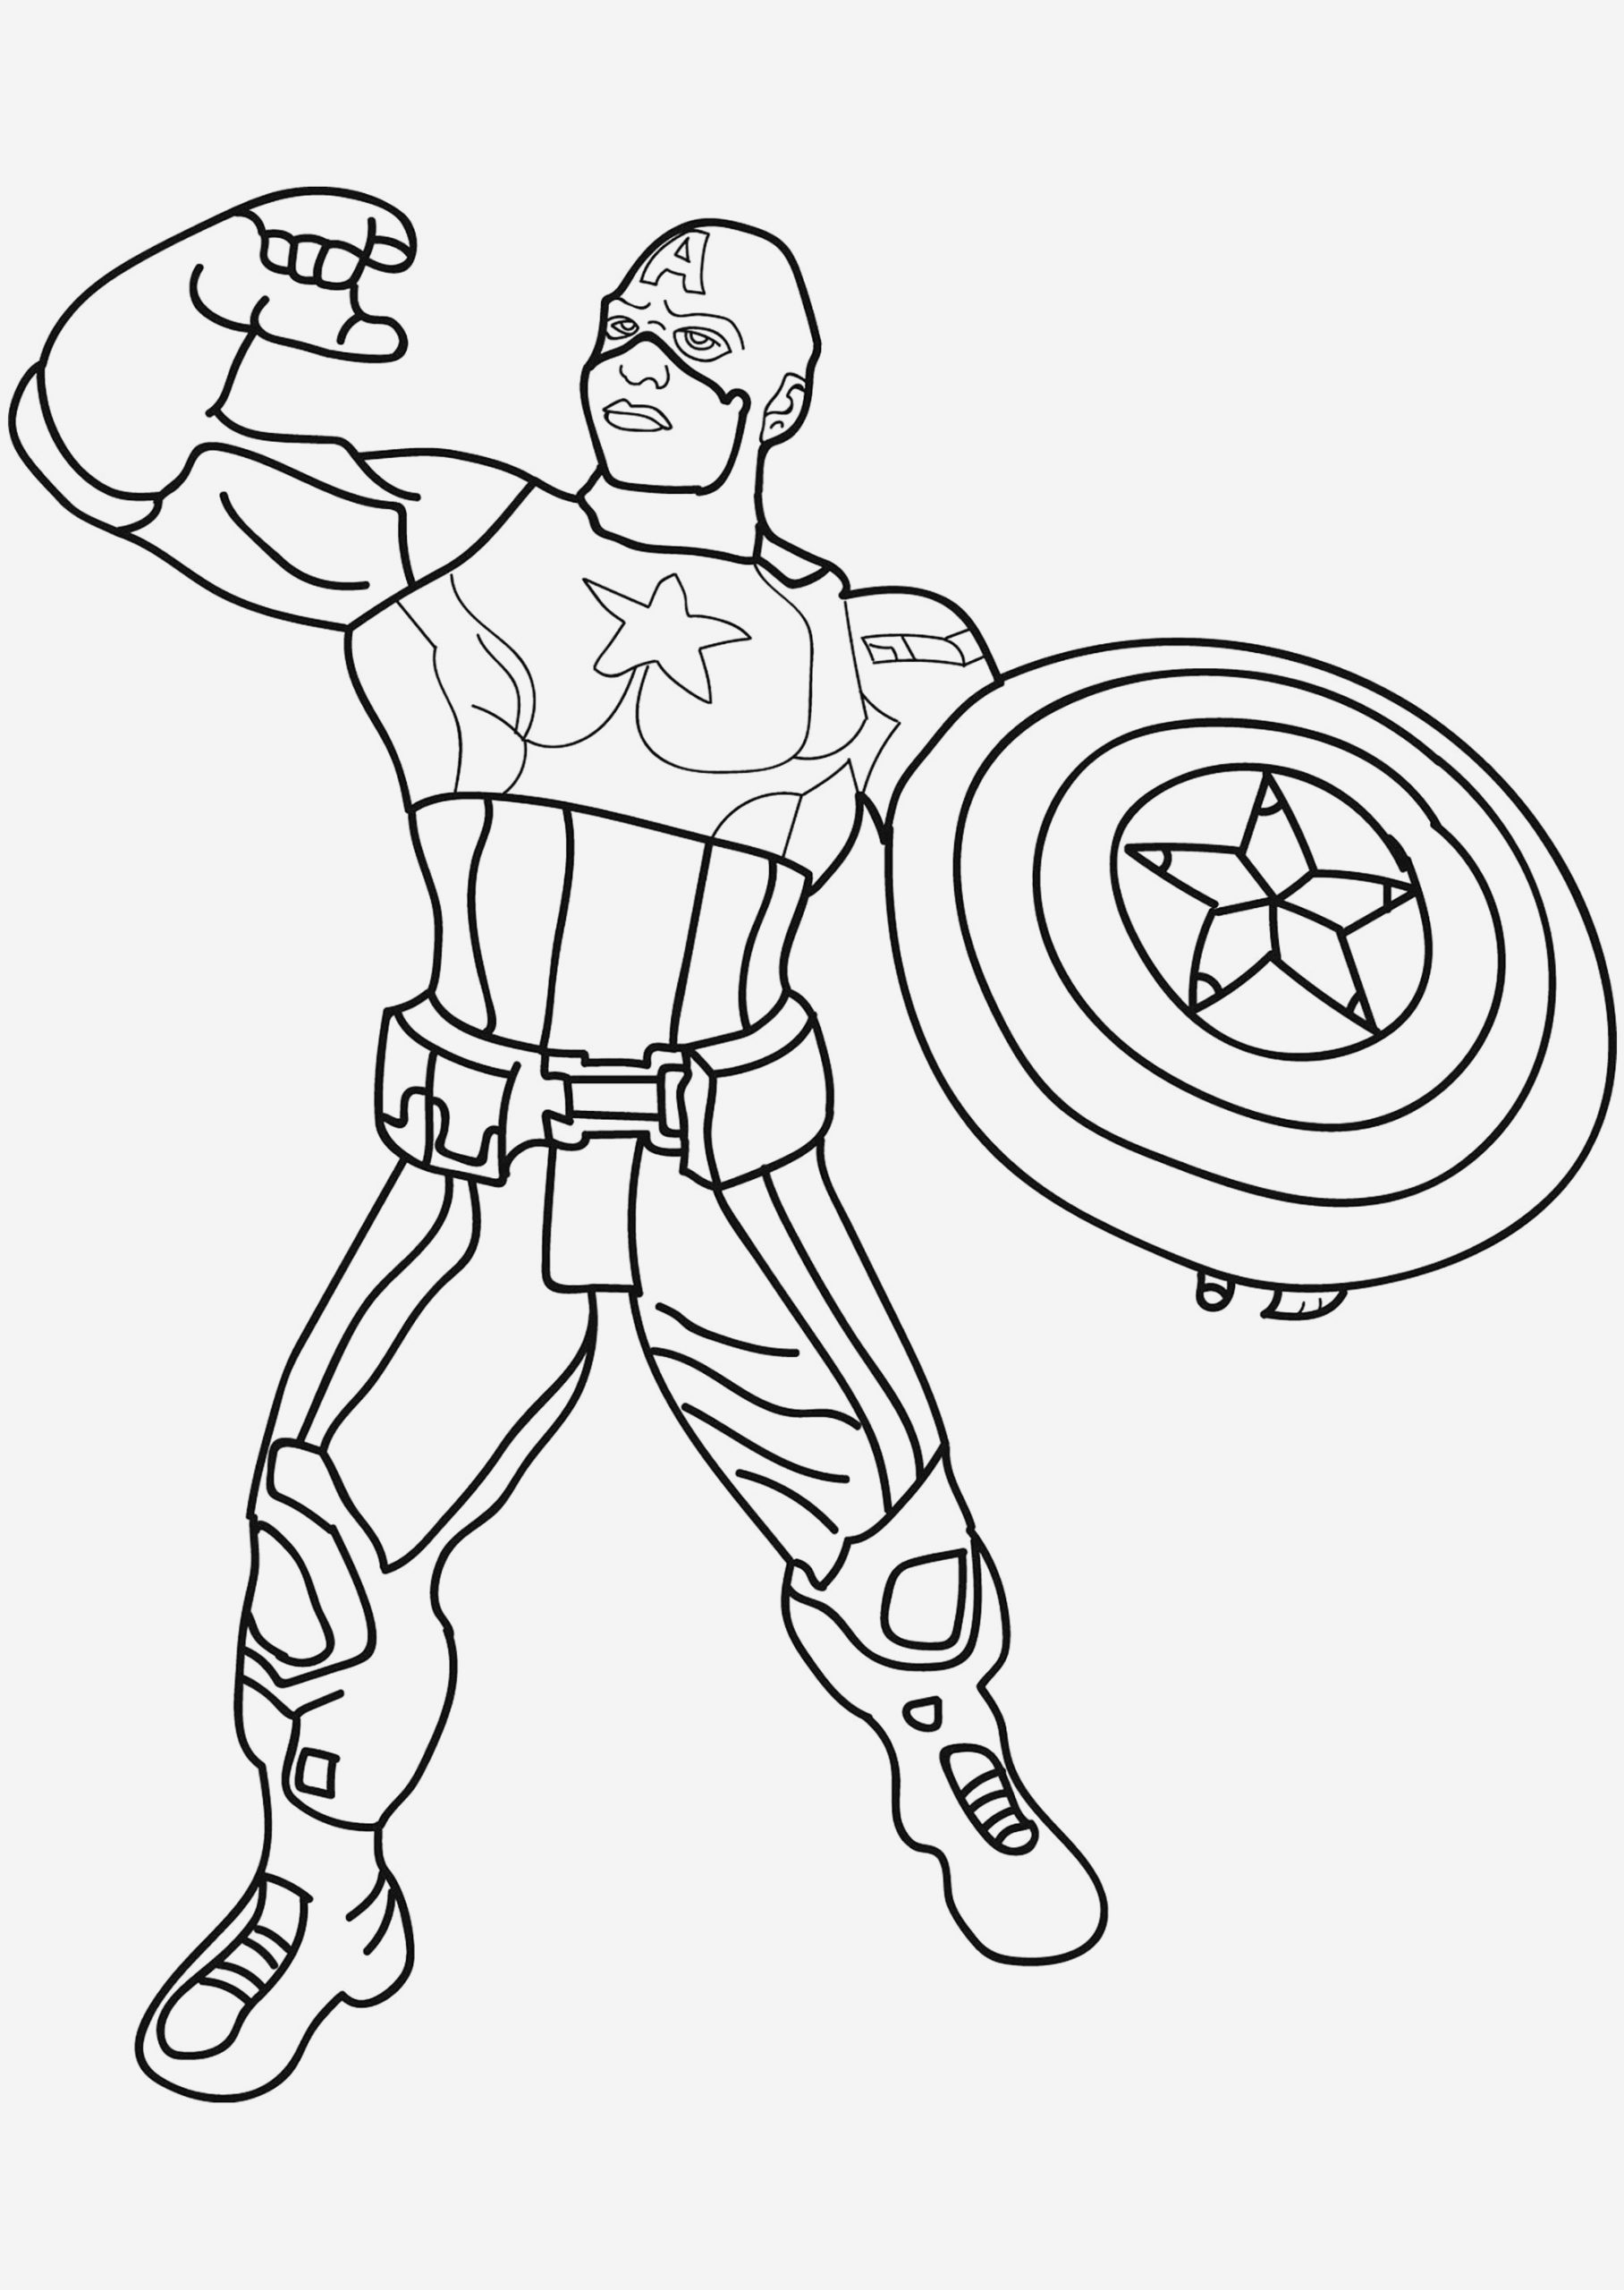 Coloriage Avengers à Imprimer Best Of Ironman and Captain America Coloring Pages Best Of Captain Of 25 Coloriage Avengers à Imprimer